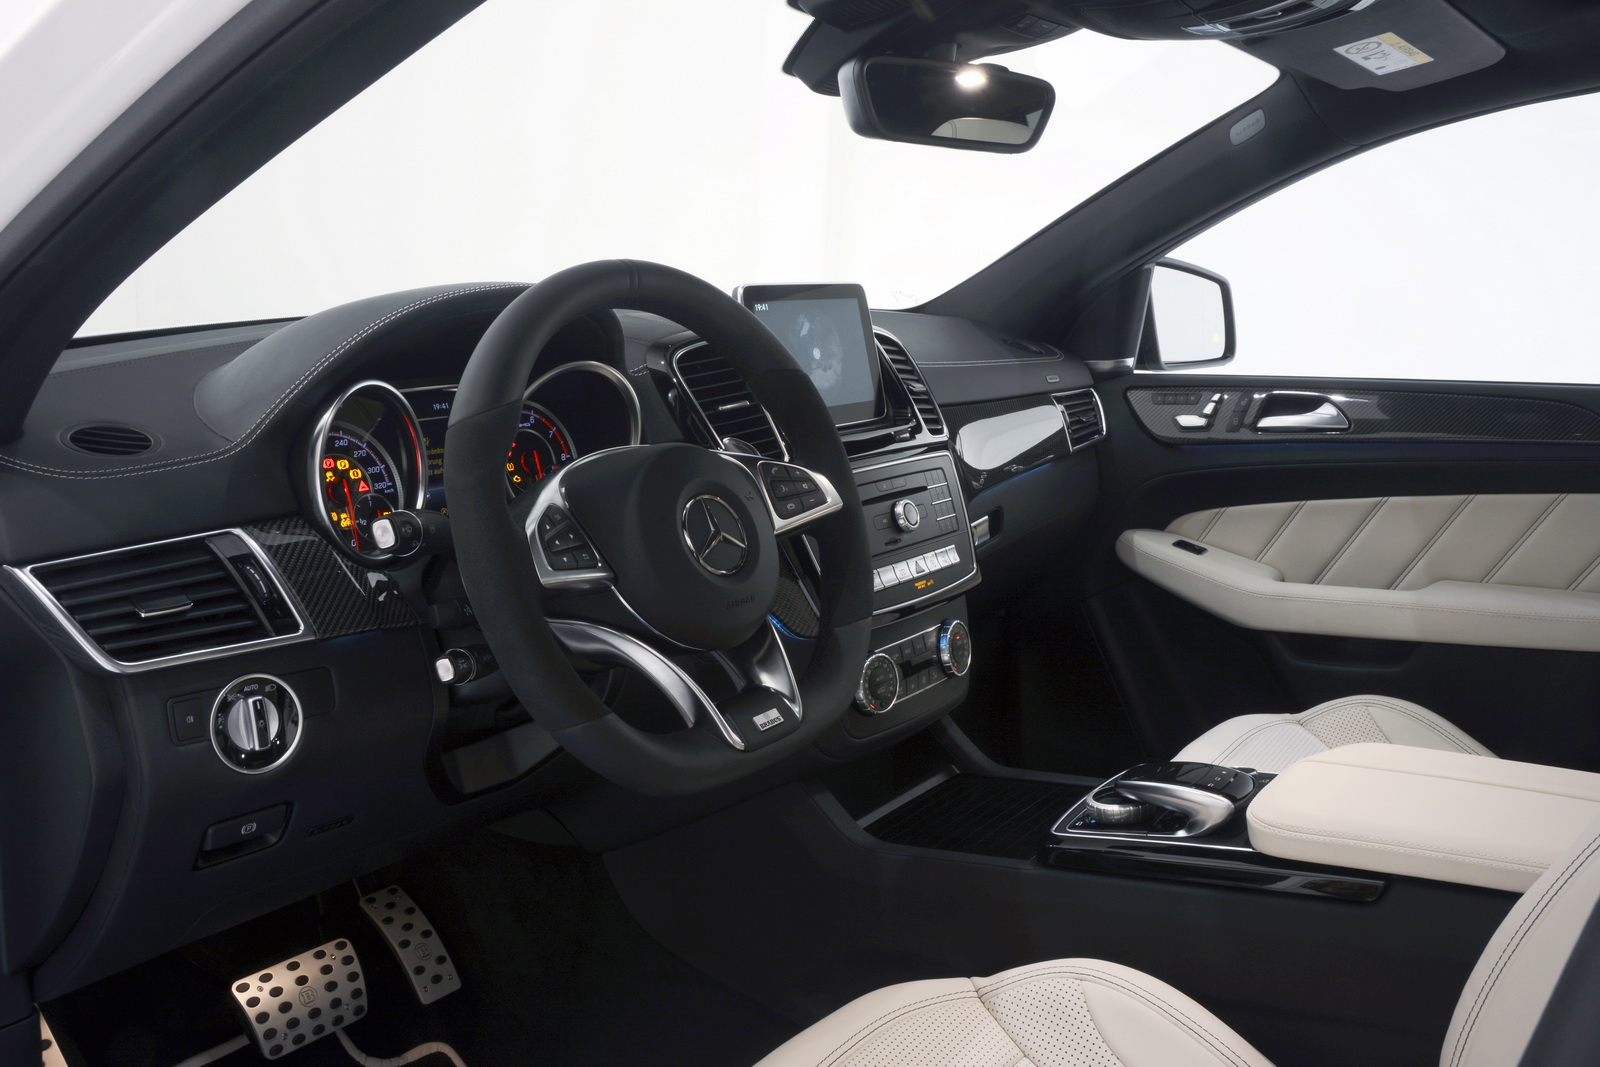 Frankfurt 2015: Brabus 850 6.0 Biturbo 4×4 Coupe is a ...